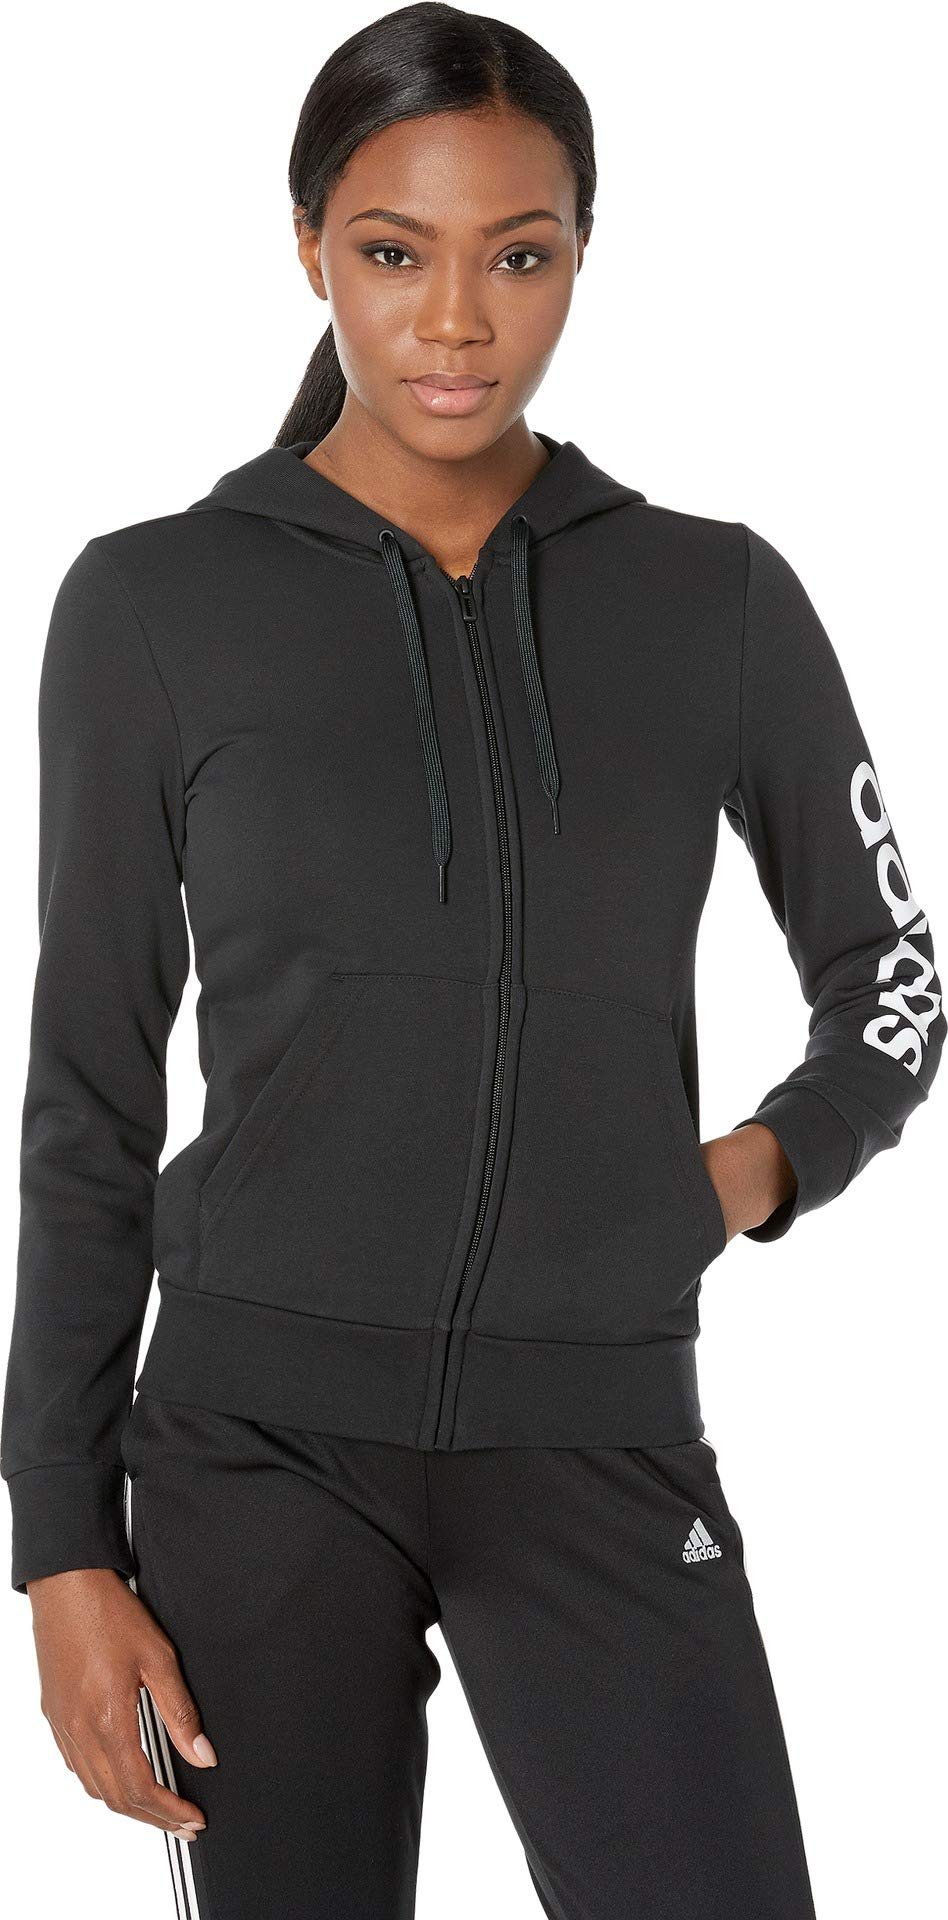 adidas Women's Essentials Linear Full-zip Hoodie, Black/White, X-Large by adidas